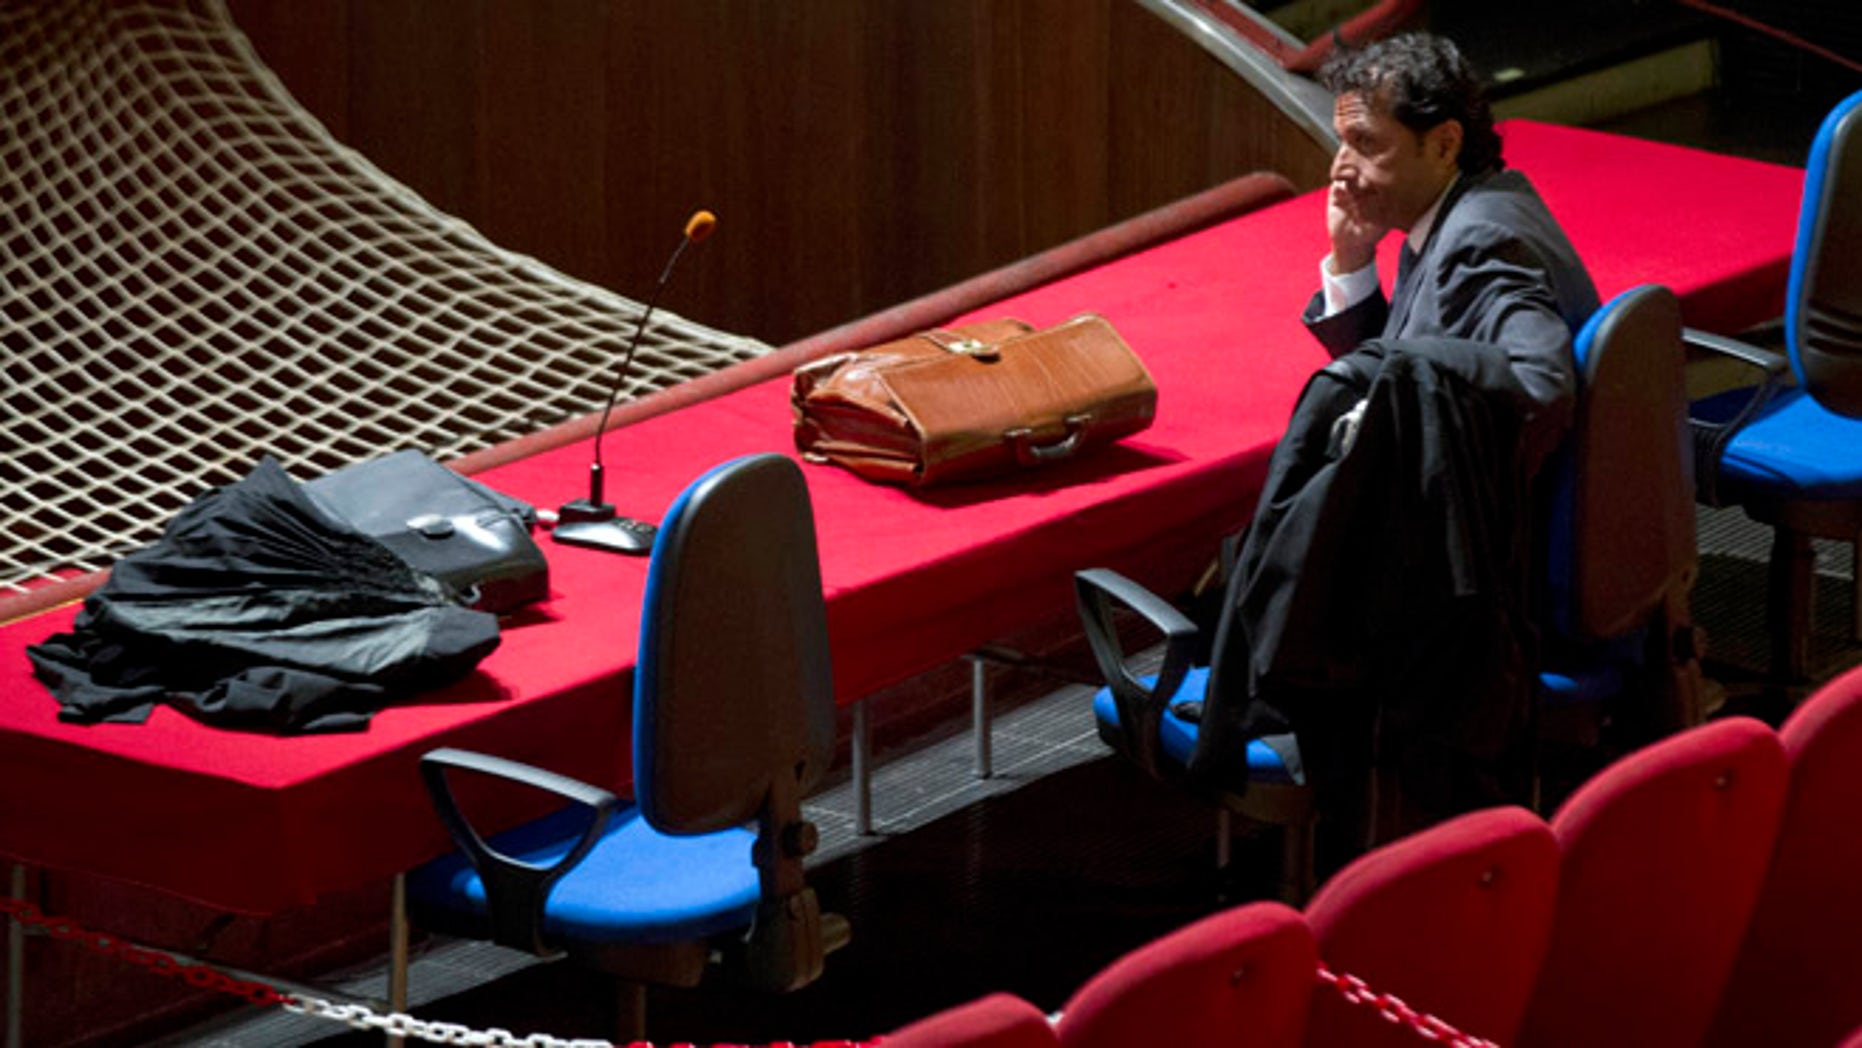 July 17, 2013: Captain Francesco Schettino waits for the start of his trial in the court room of the converted Teatro Moderno theater, in Grosseto, Italy.